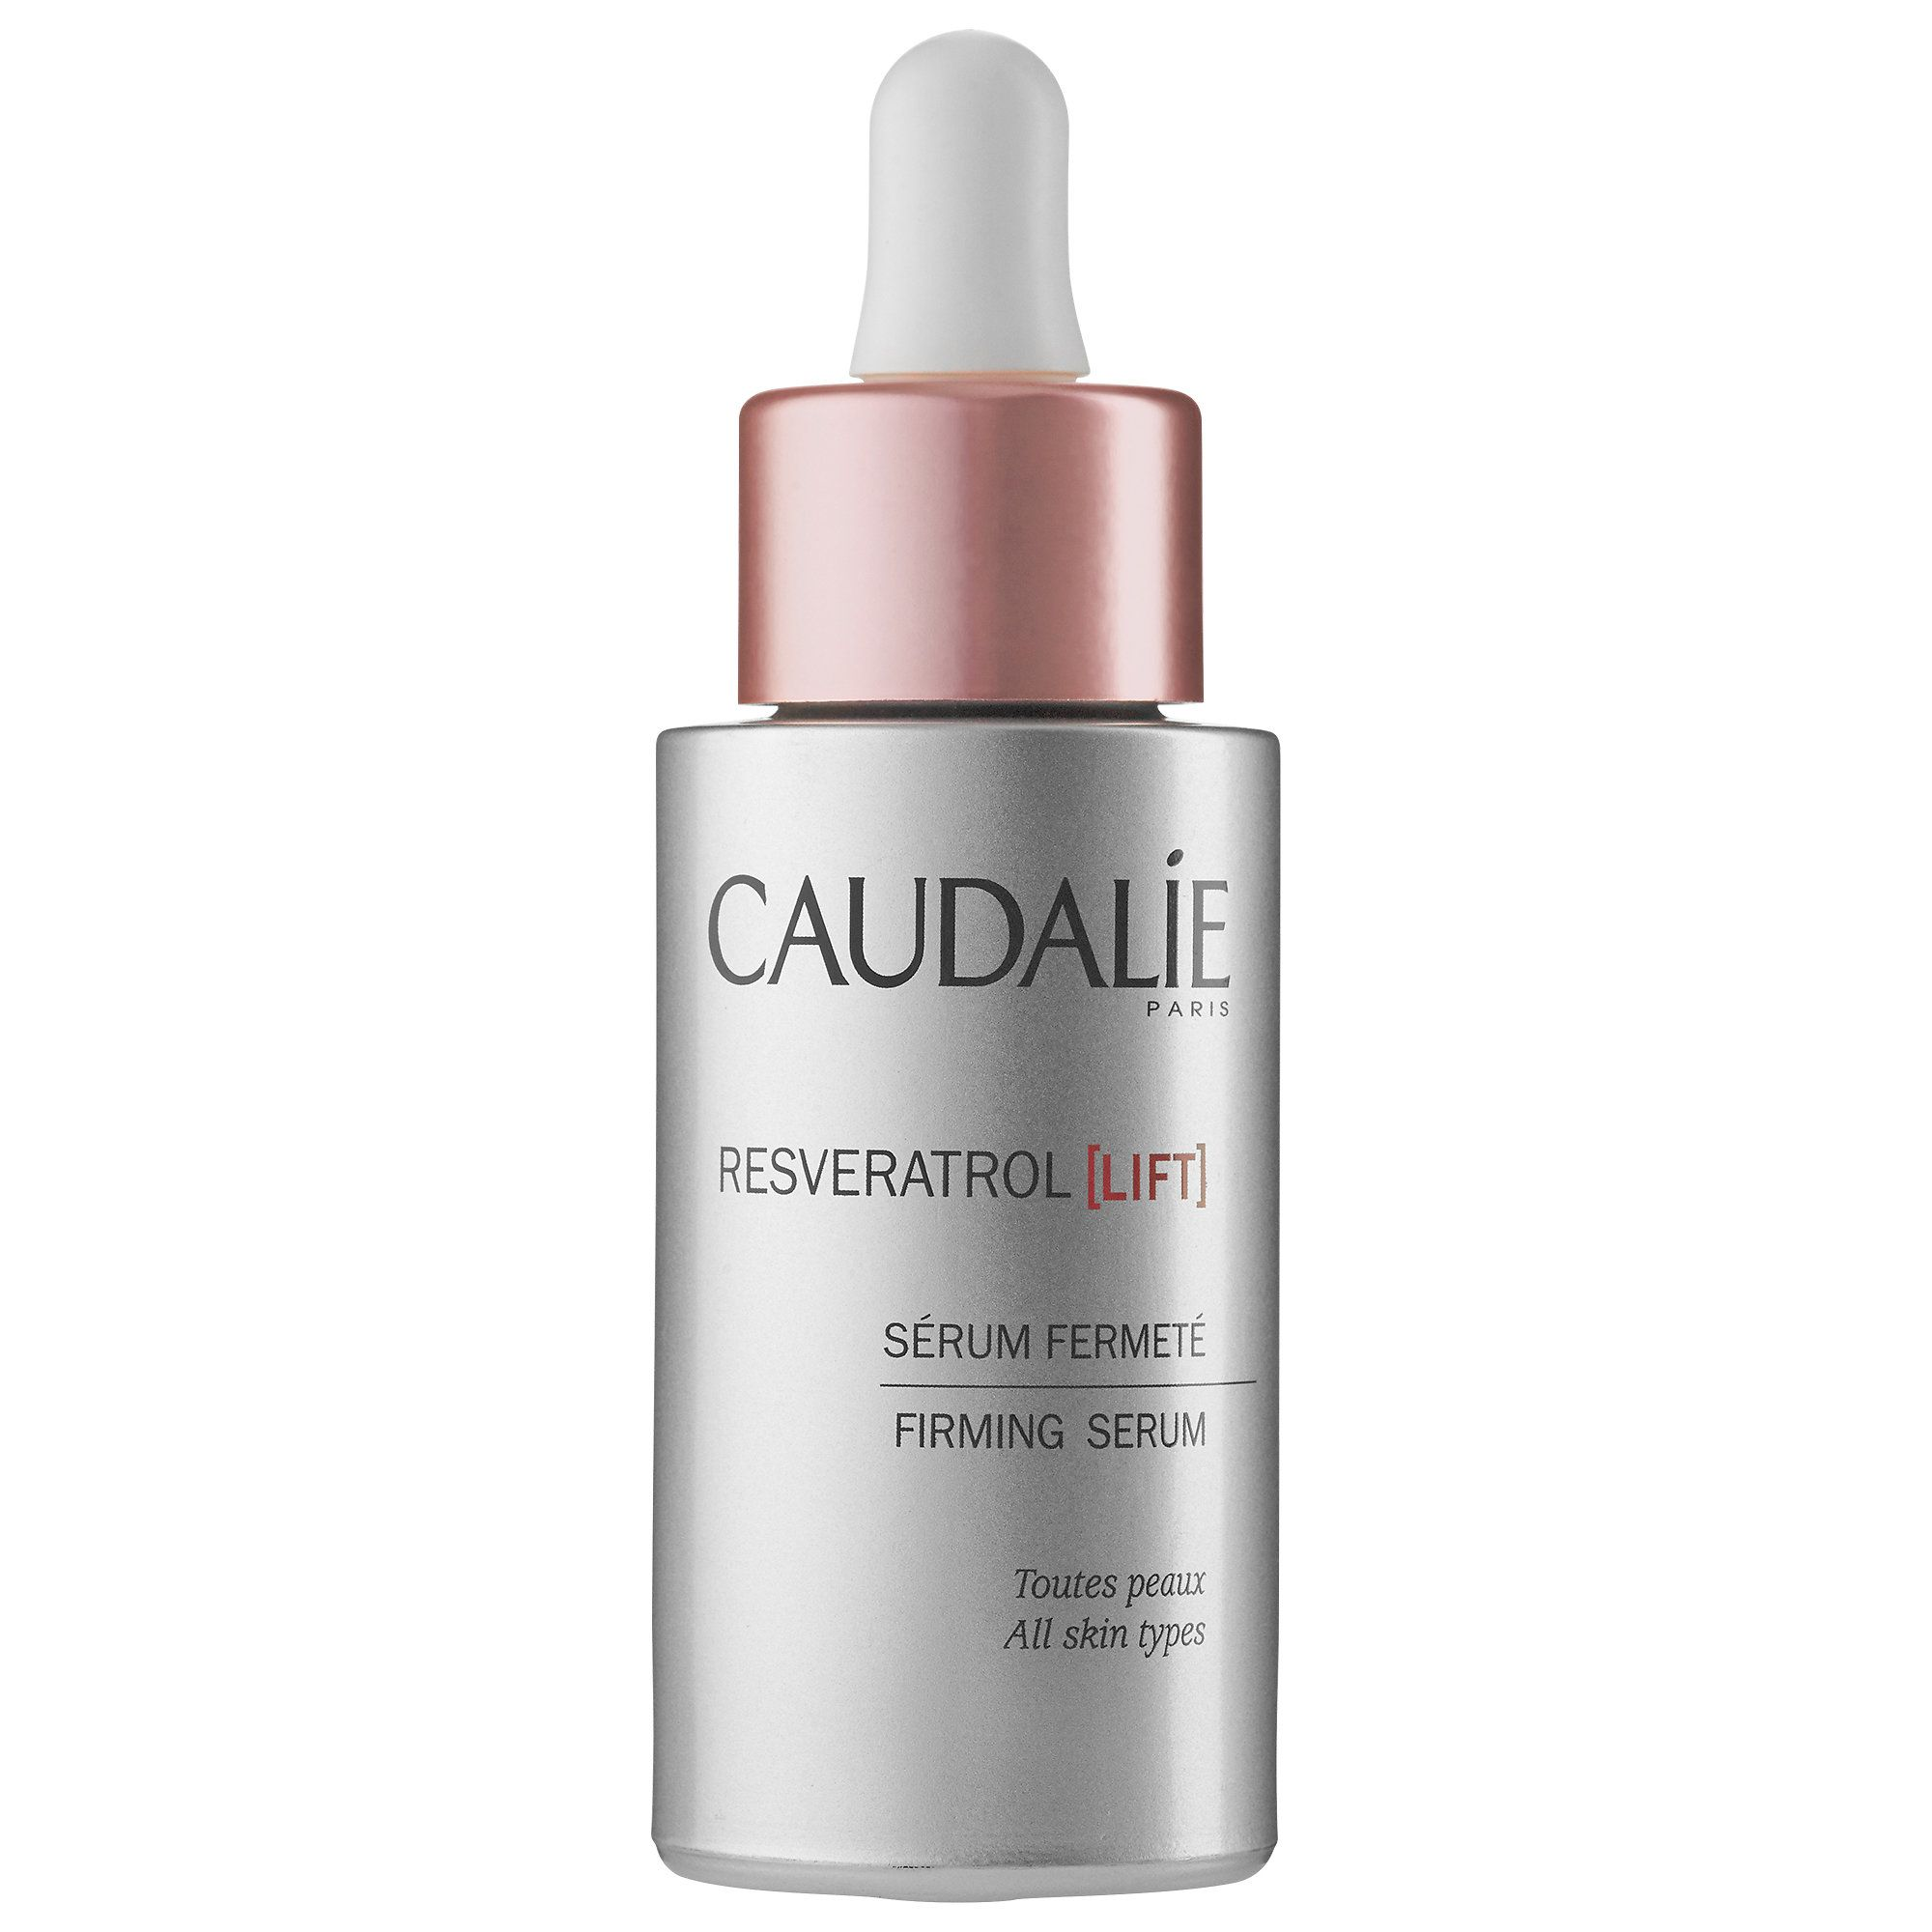 Caudalie Resveratrol Lift Firming Serum Plumps The Look Of Skin For A Naturally Lifted Youthful Appearance